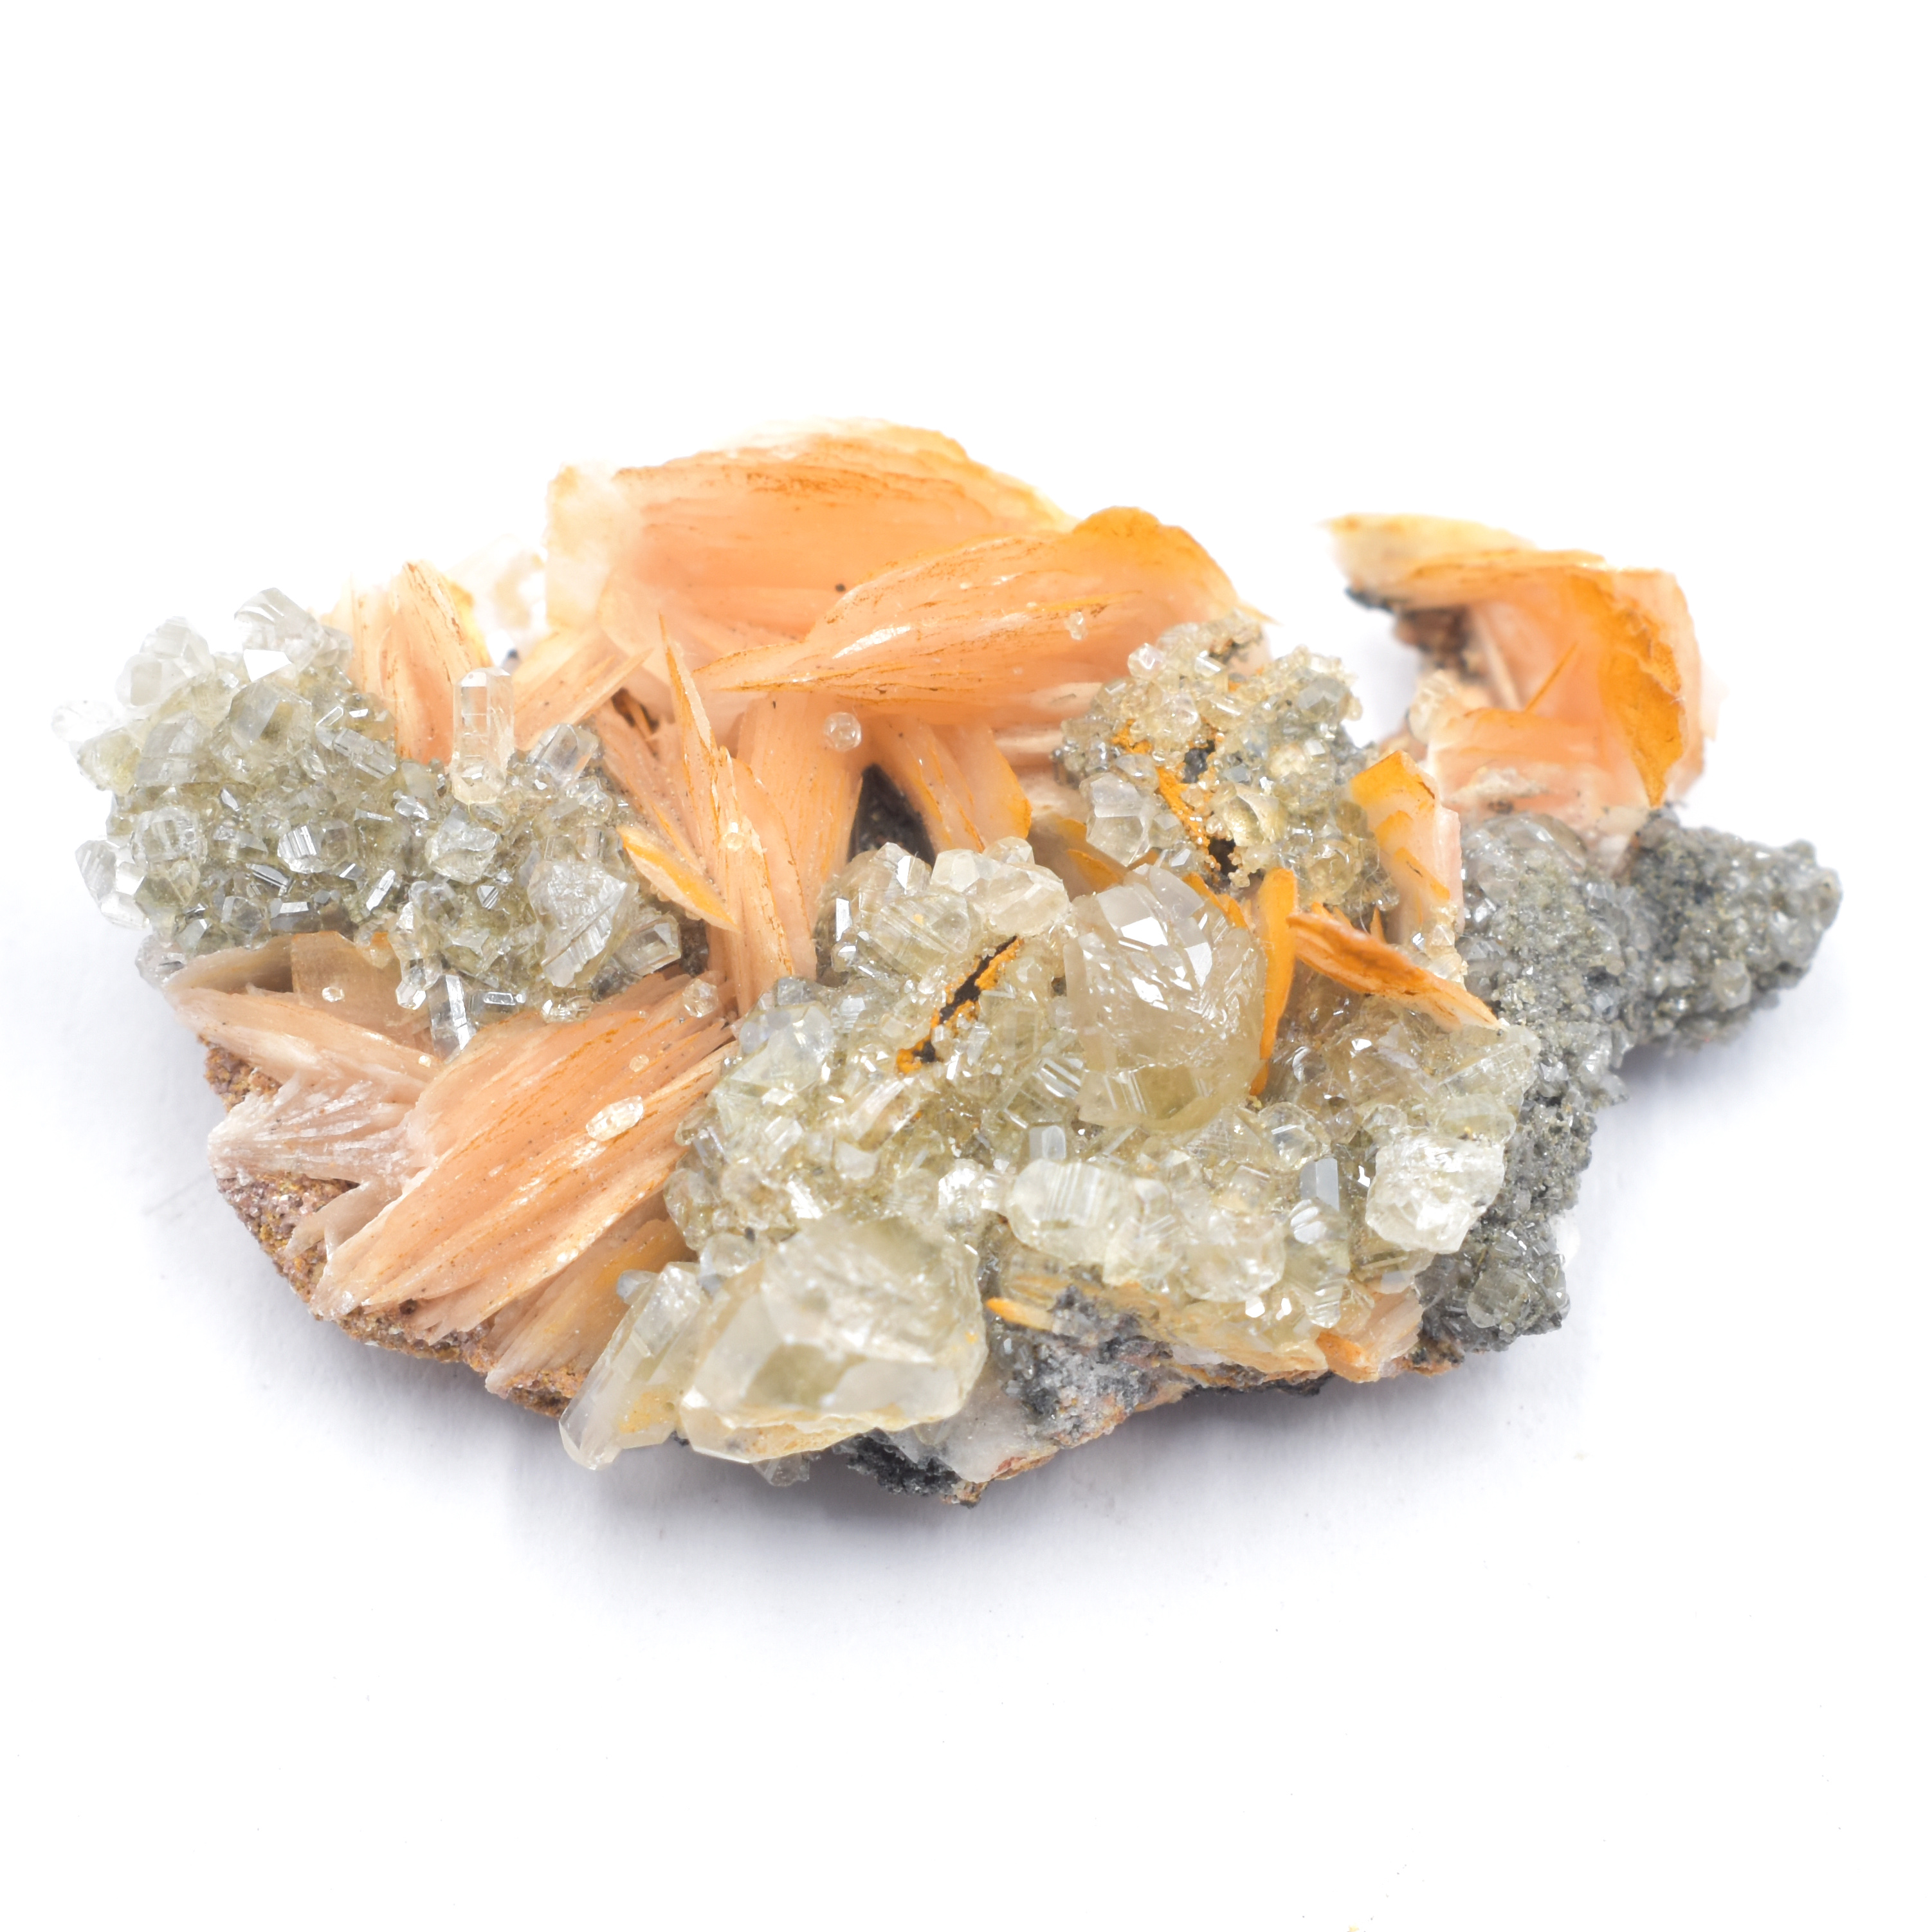 Cerussite Galena & Barite Crystal Specimens A-D simply crystals of the world